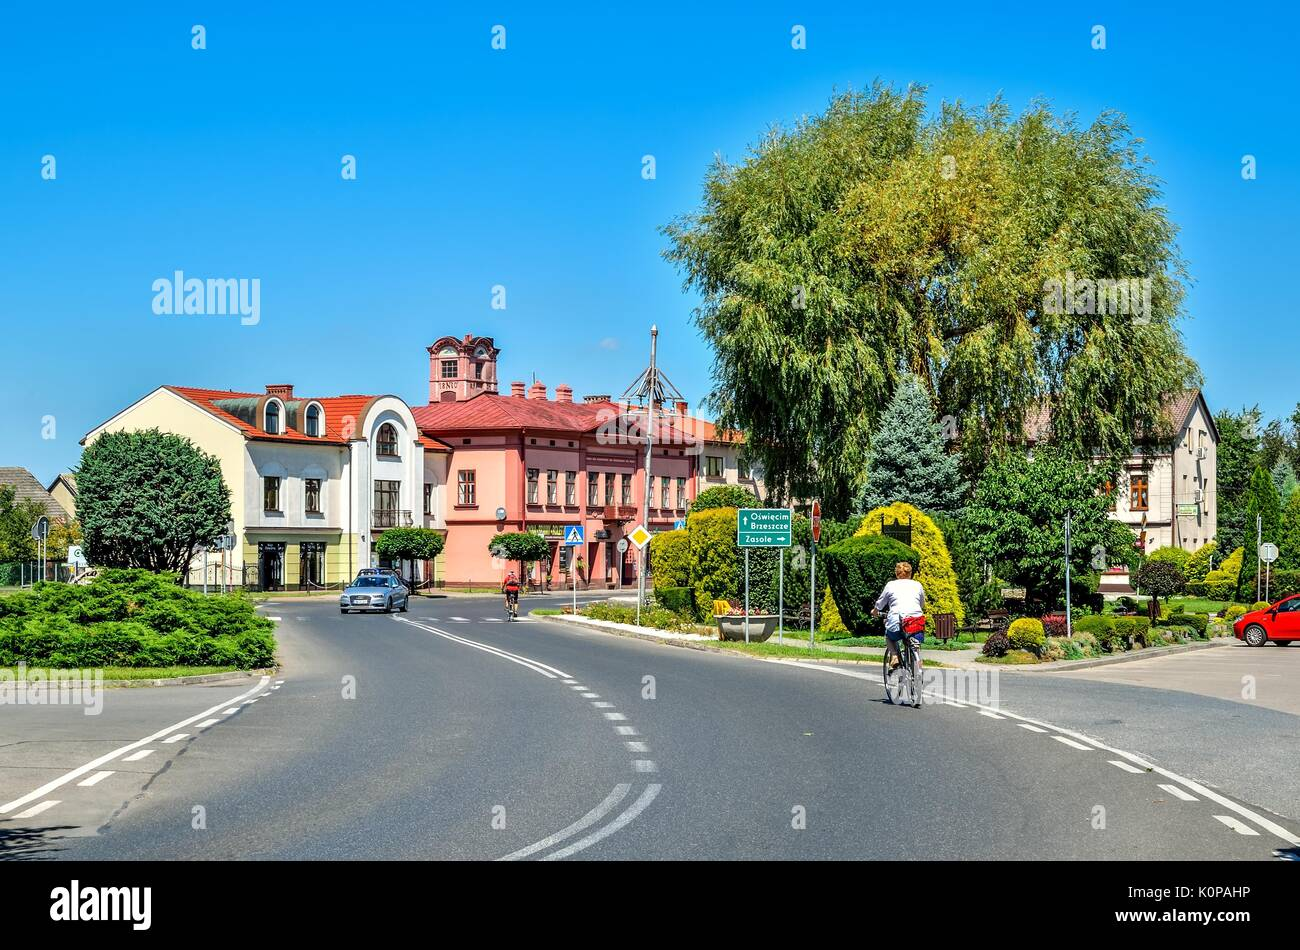 WILAMOWICE, POLAND - AUGUST 5, 2017: Market in the small beautiful town of Wilamowice in Lesser Poland. - Stock Image